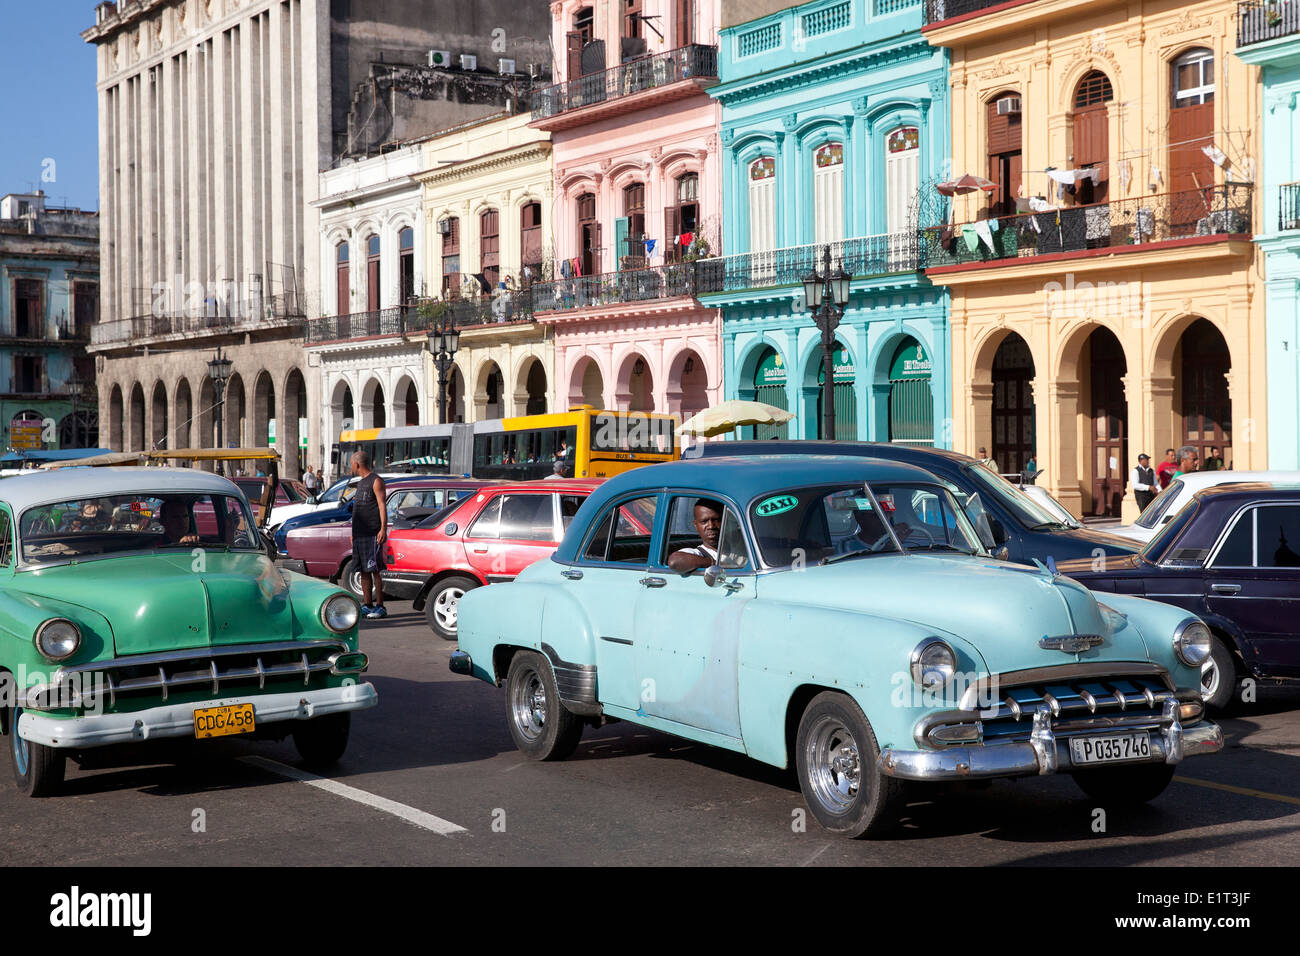 Classic Cars And City View Havana Cuba Stock Photo Royalty Free